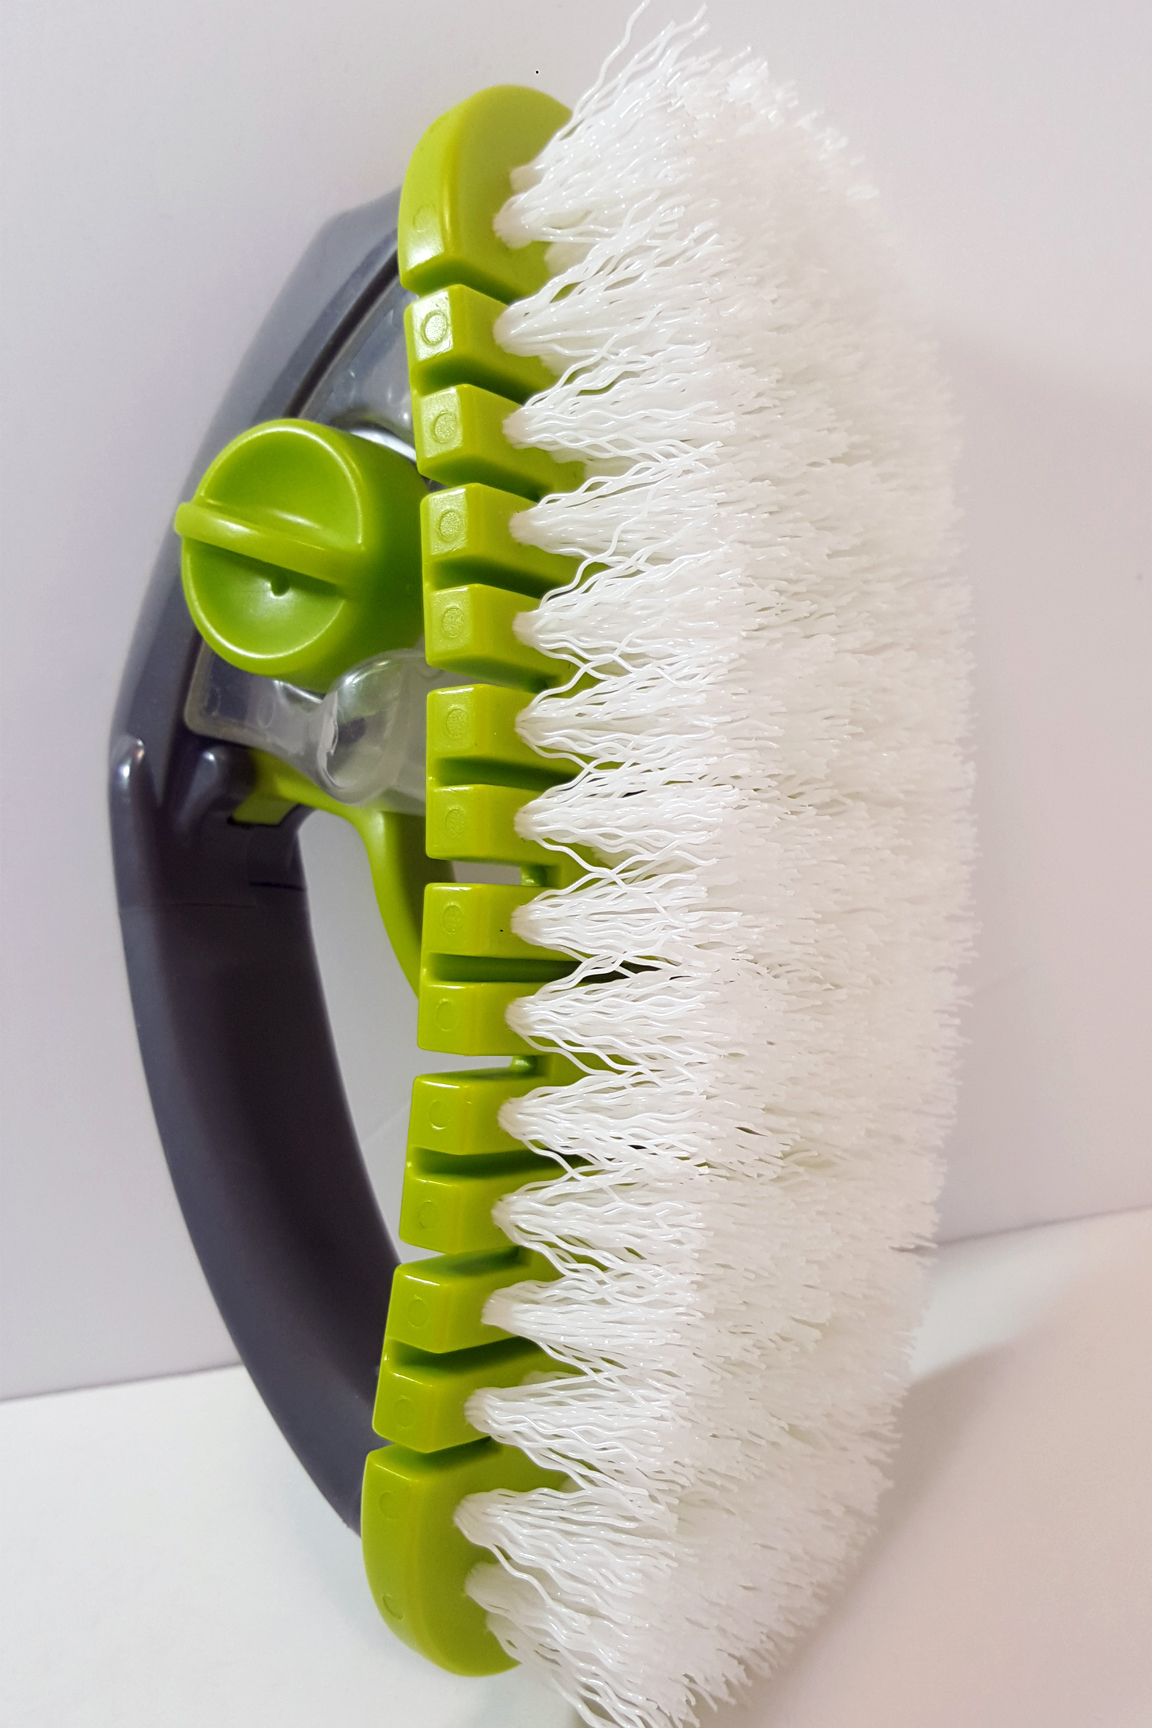 Large, flexible scrubber with 8x brstles for easy cleaning.